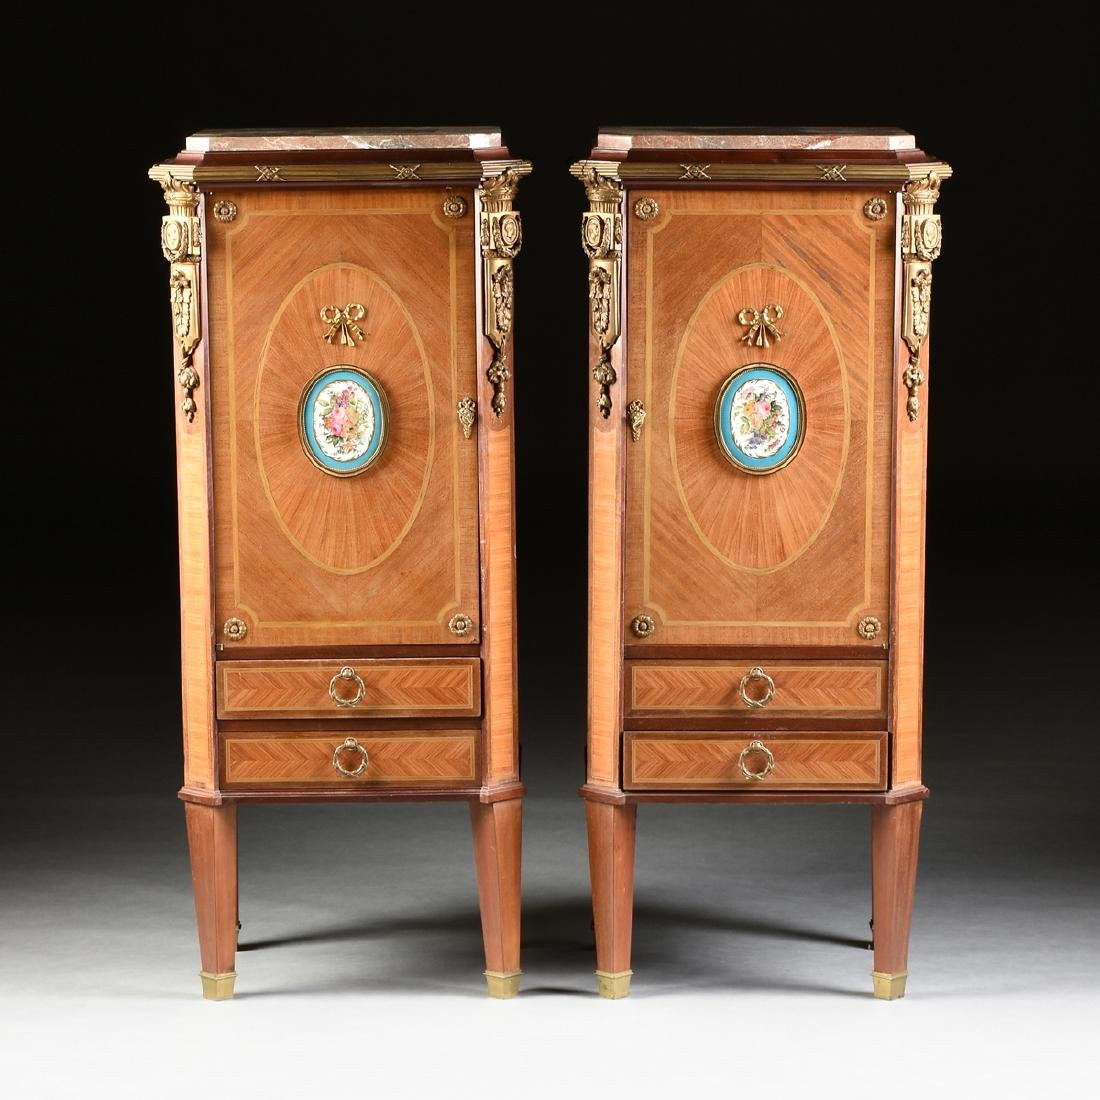 A PAIR OF SECOND FRENCH EMPIRE (1852-1870) ORMOLU AND